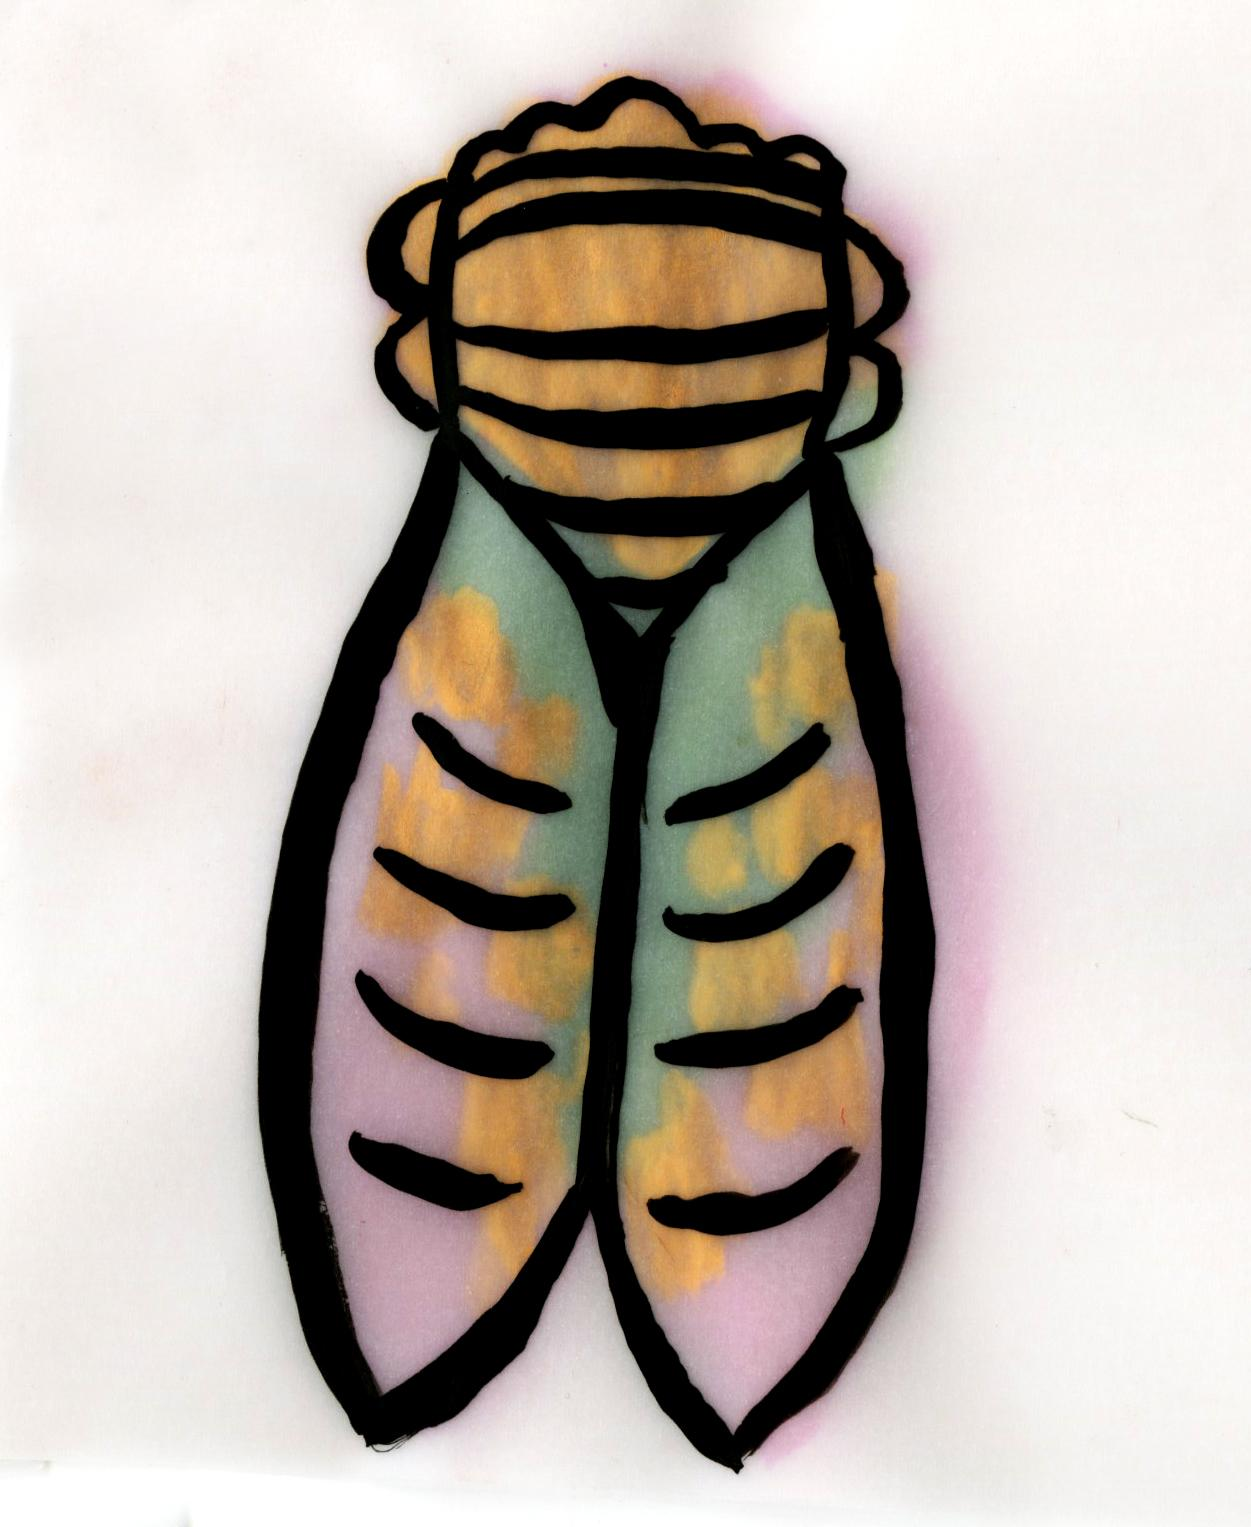 Layered cicada. Ink on layers of tracing paper.